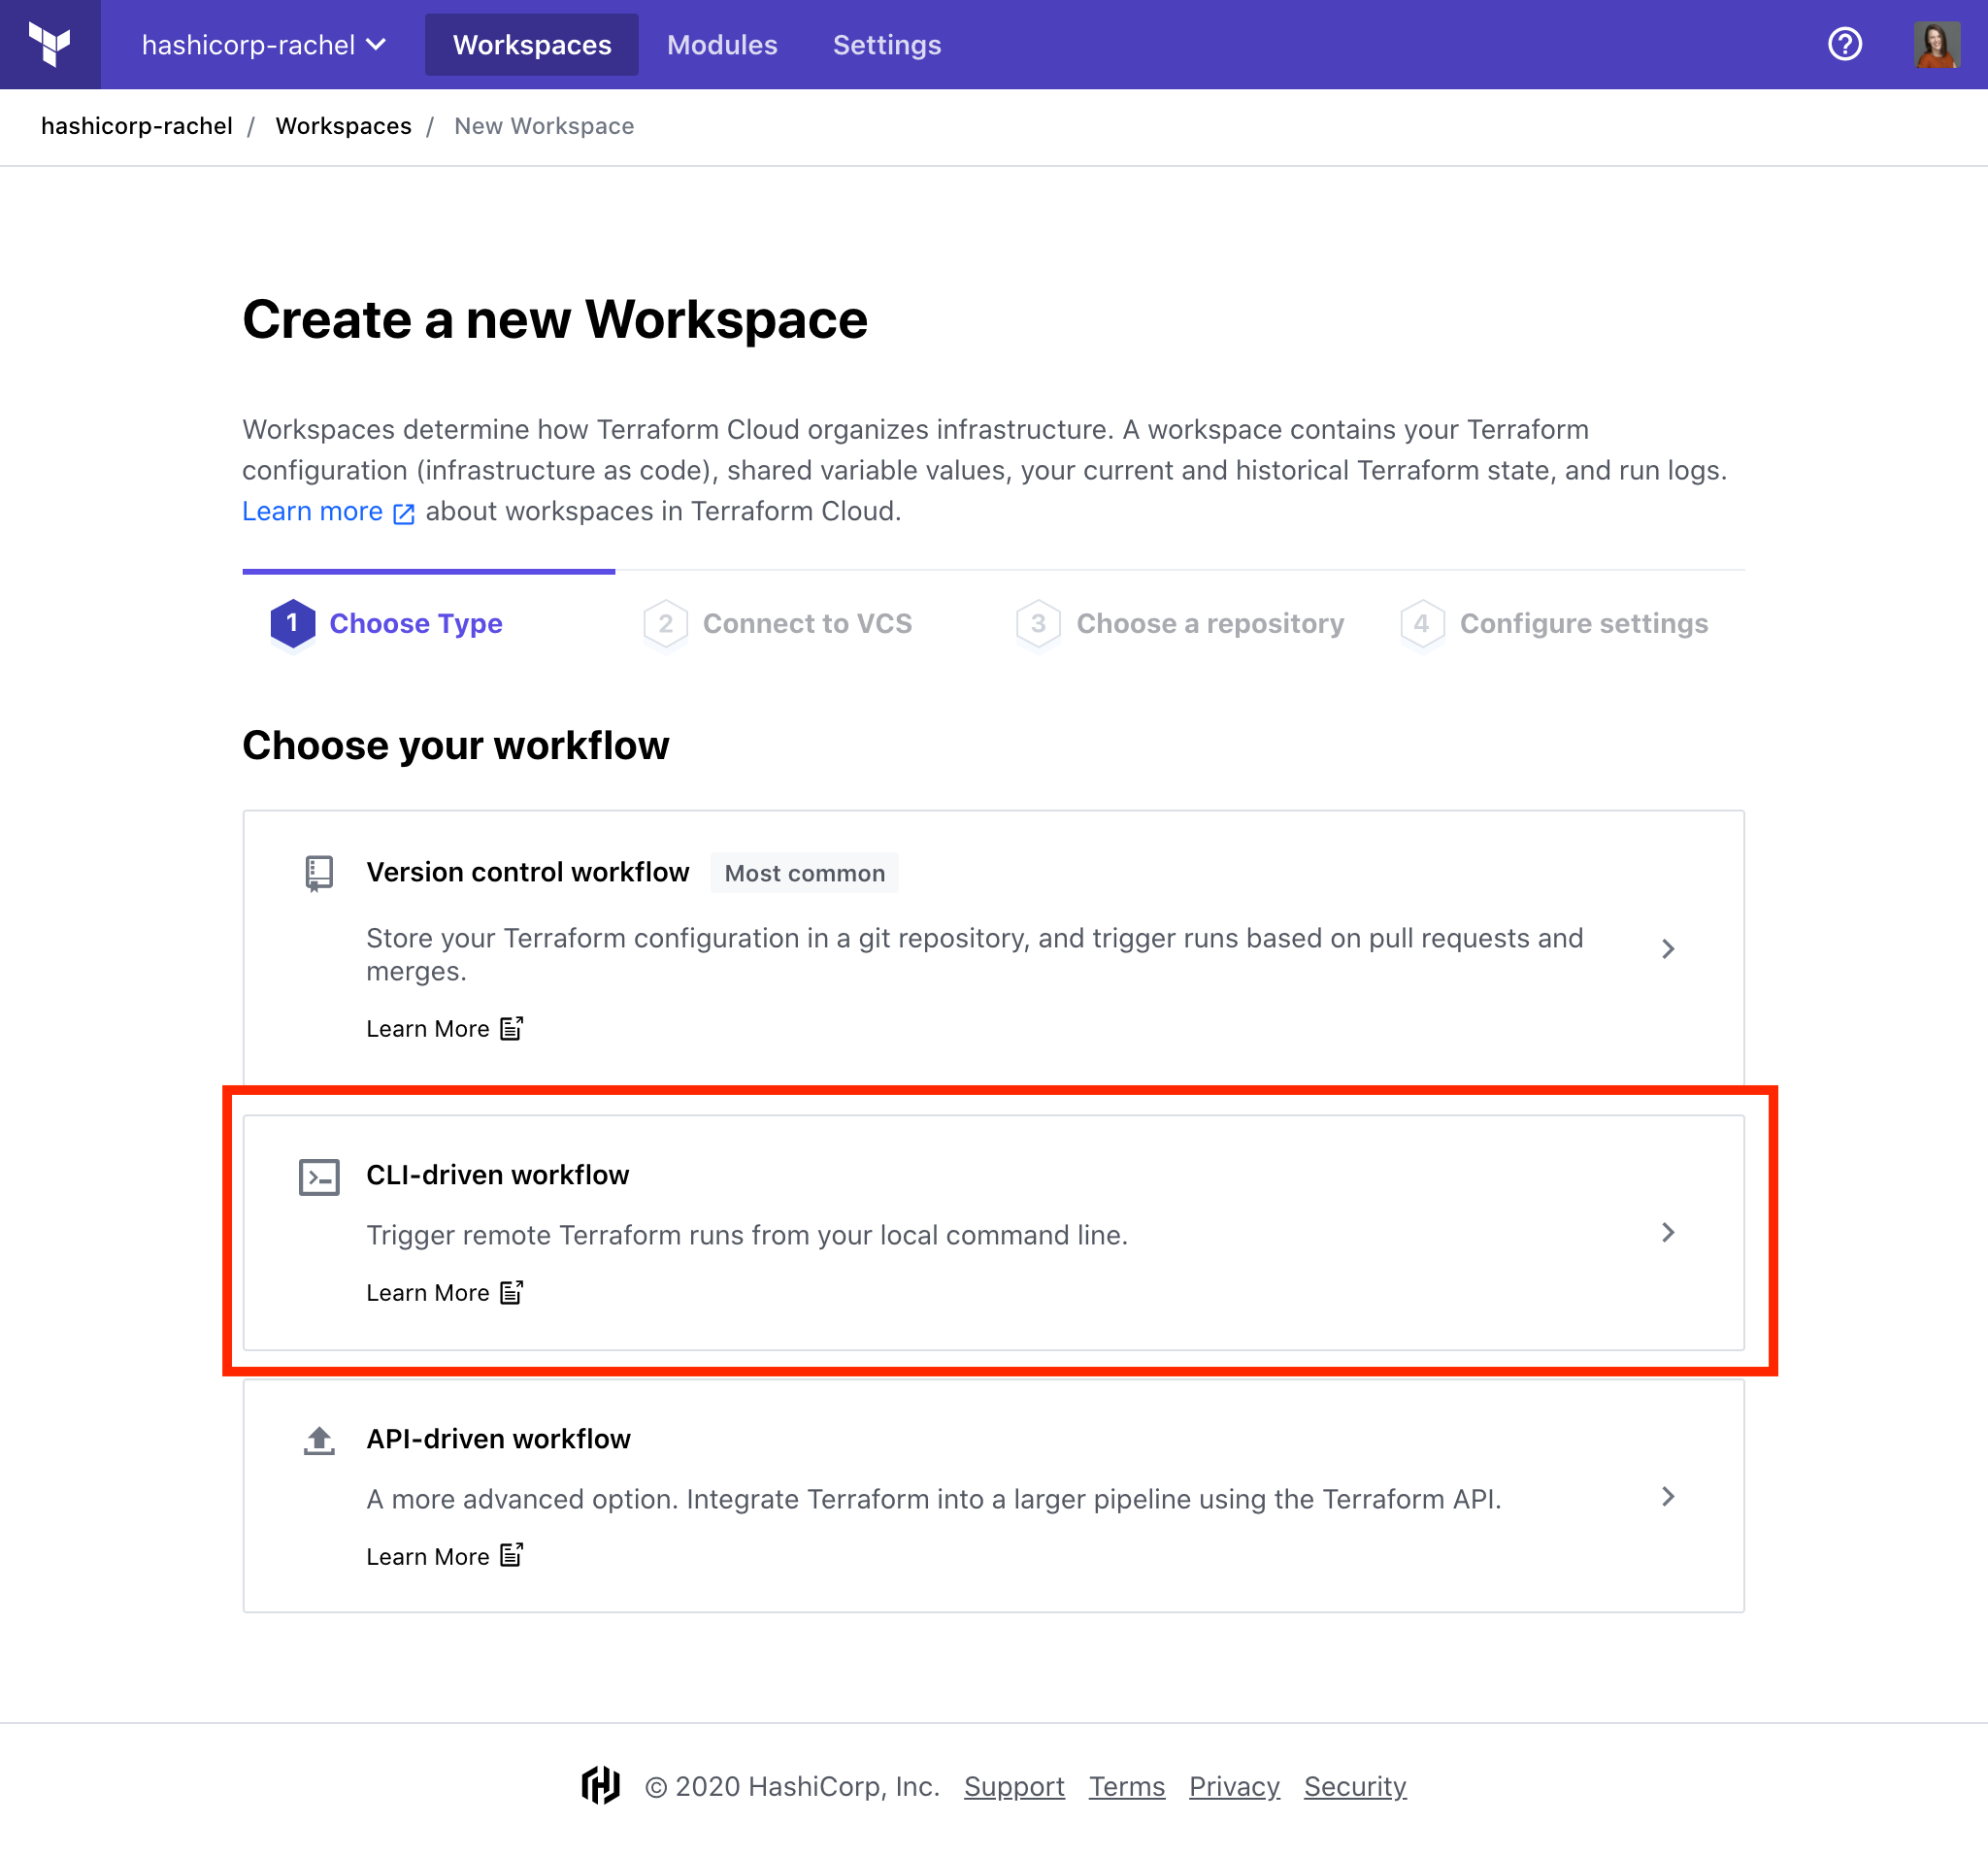 Create a new workspace in Terraform Cloud with the CLI Driven workflow